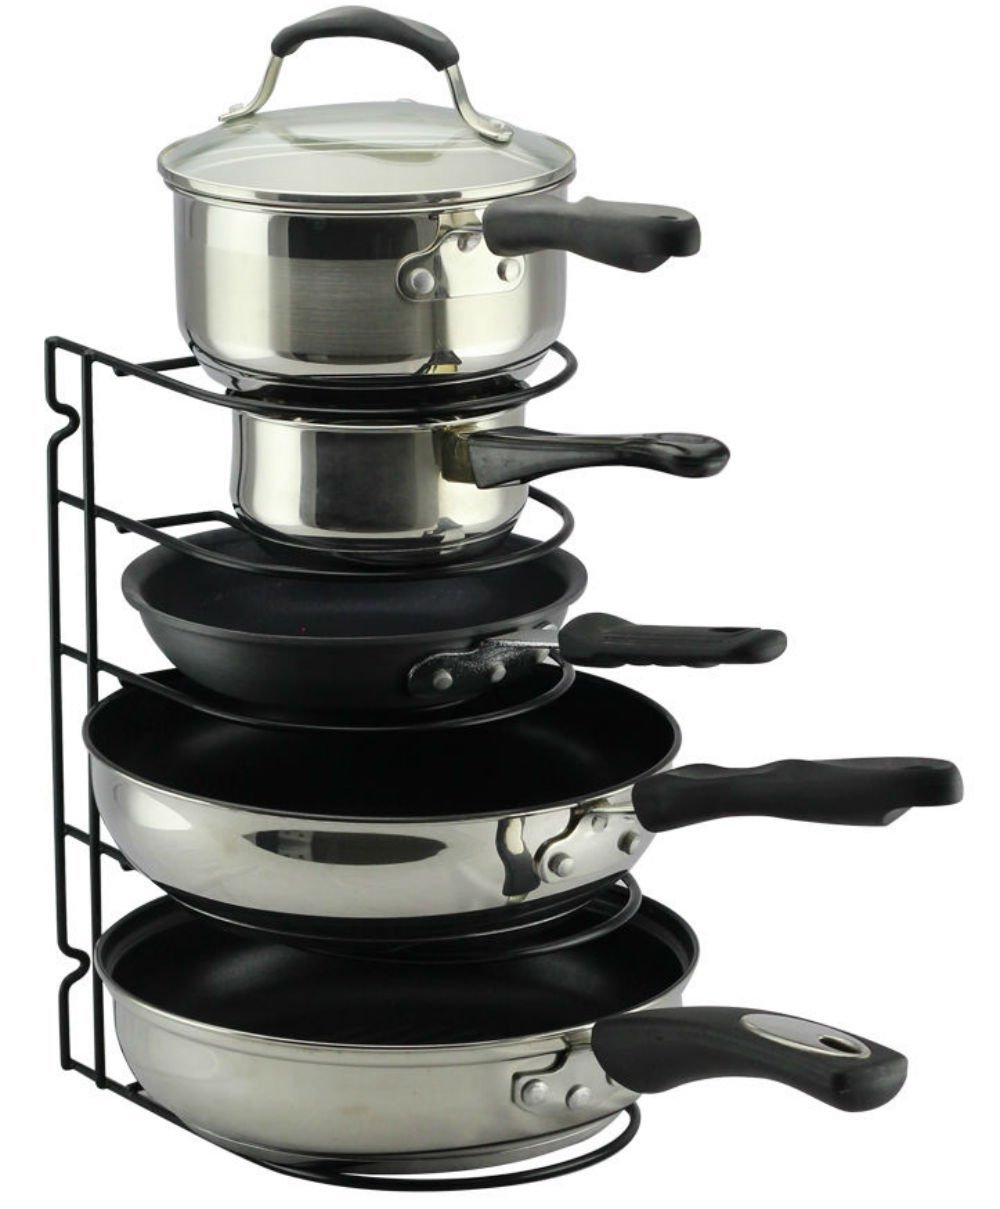 Pan Rack Organizer Holder For Kitchen Countertop Cabinet And Pantry Blackii Kitchen